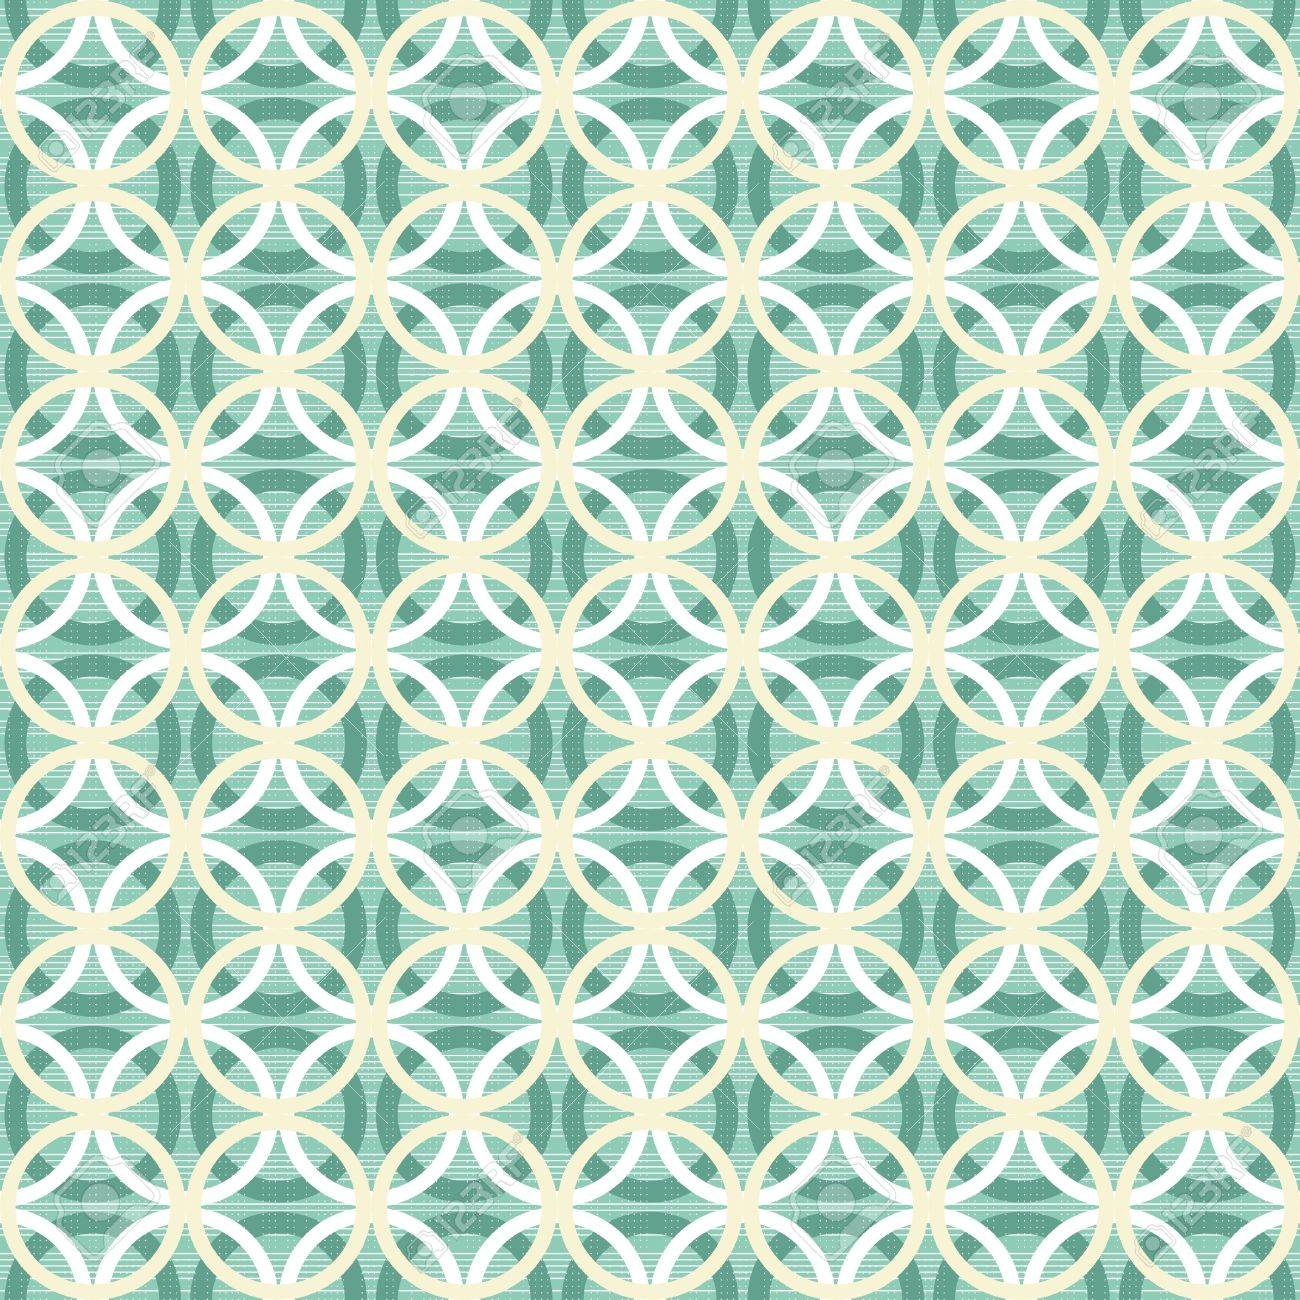 light circles in rows on turquoise background retro seamless pattern Stock Vector - 16803918